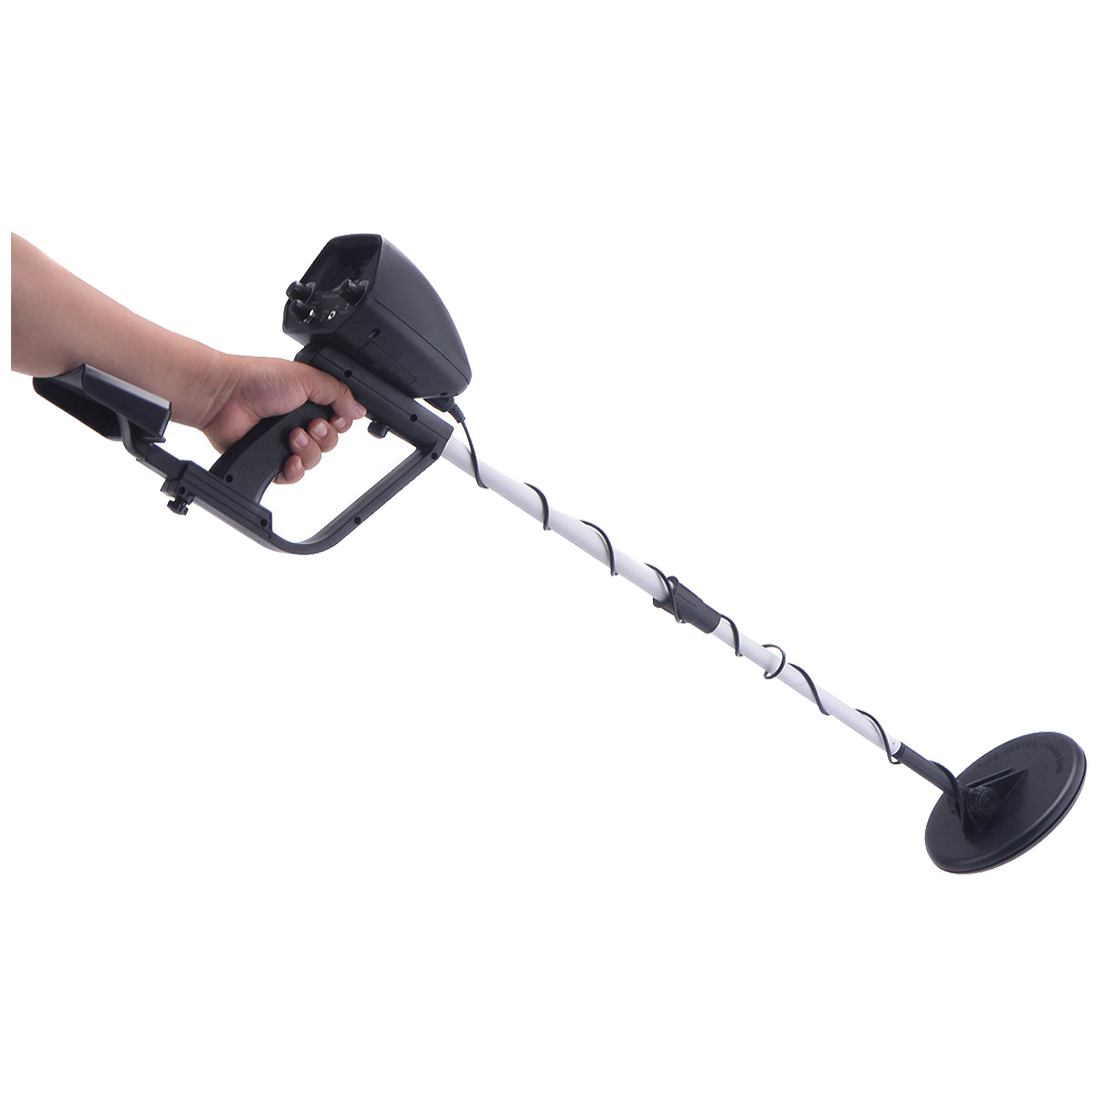 Waterproof Metal Detector Deep Sensitive Search Gold Digger Hunter 6.5 inch MD-4030 Handheld Metal Detector Scanning Gold Hunter professional tx 850 deep penetrating gold nugget hunter pinpointing metal detector 19 khz frequency adjustable position armrest